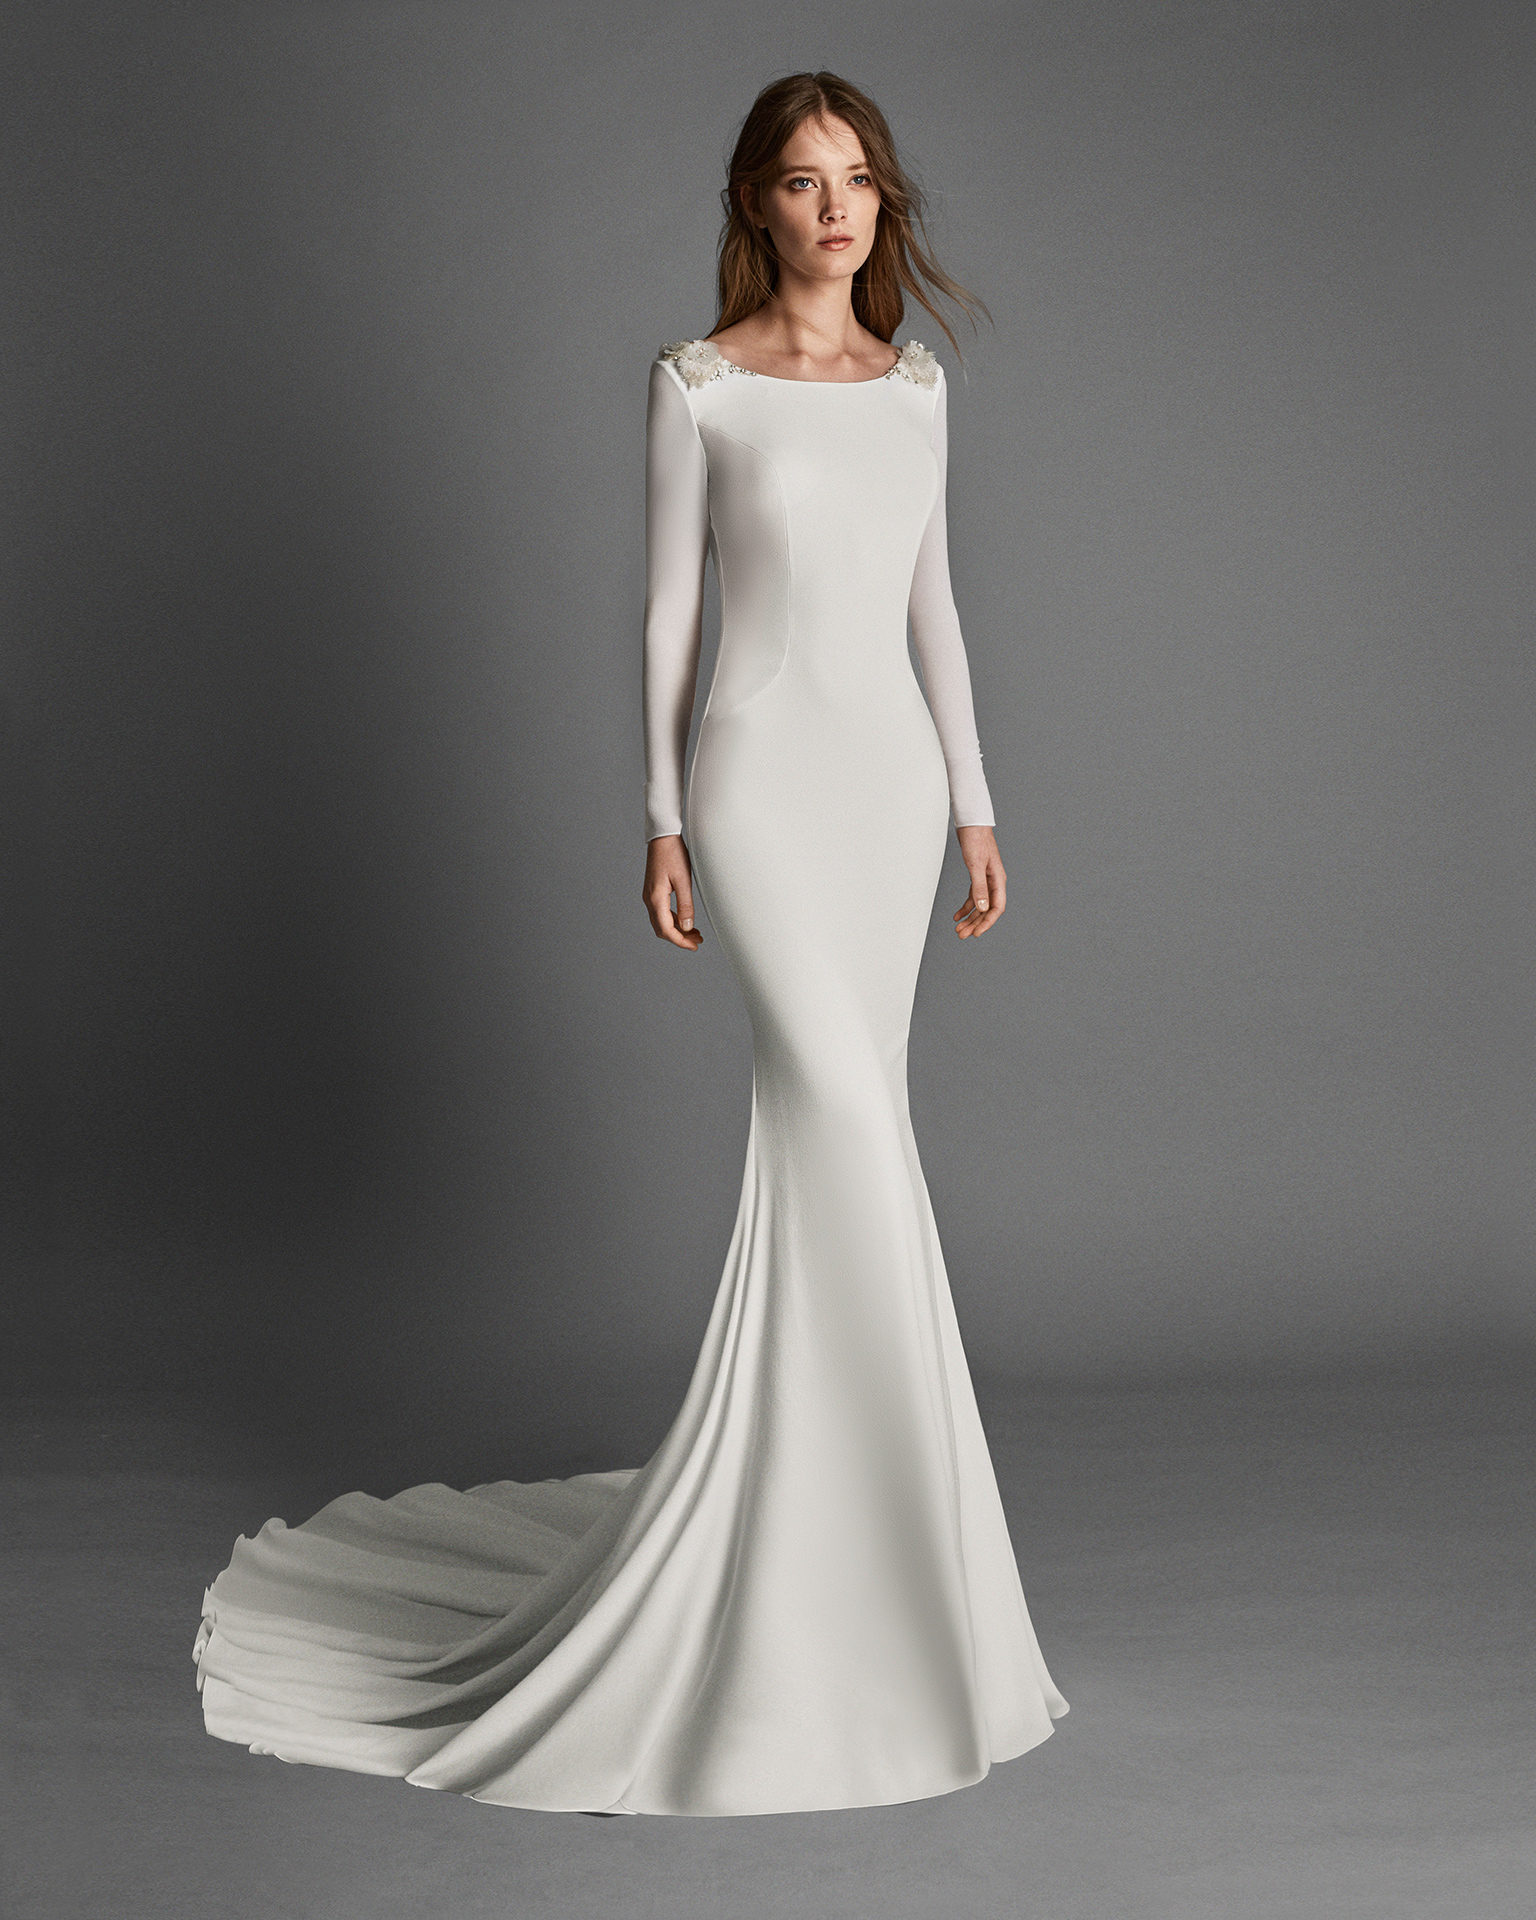 Mermaid-style crepe Georgette wedding dress with long sleeves, bateau neckline and crystal flowers on back.